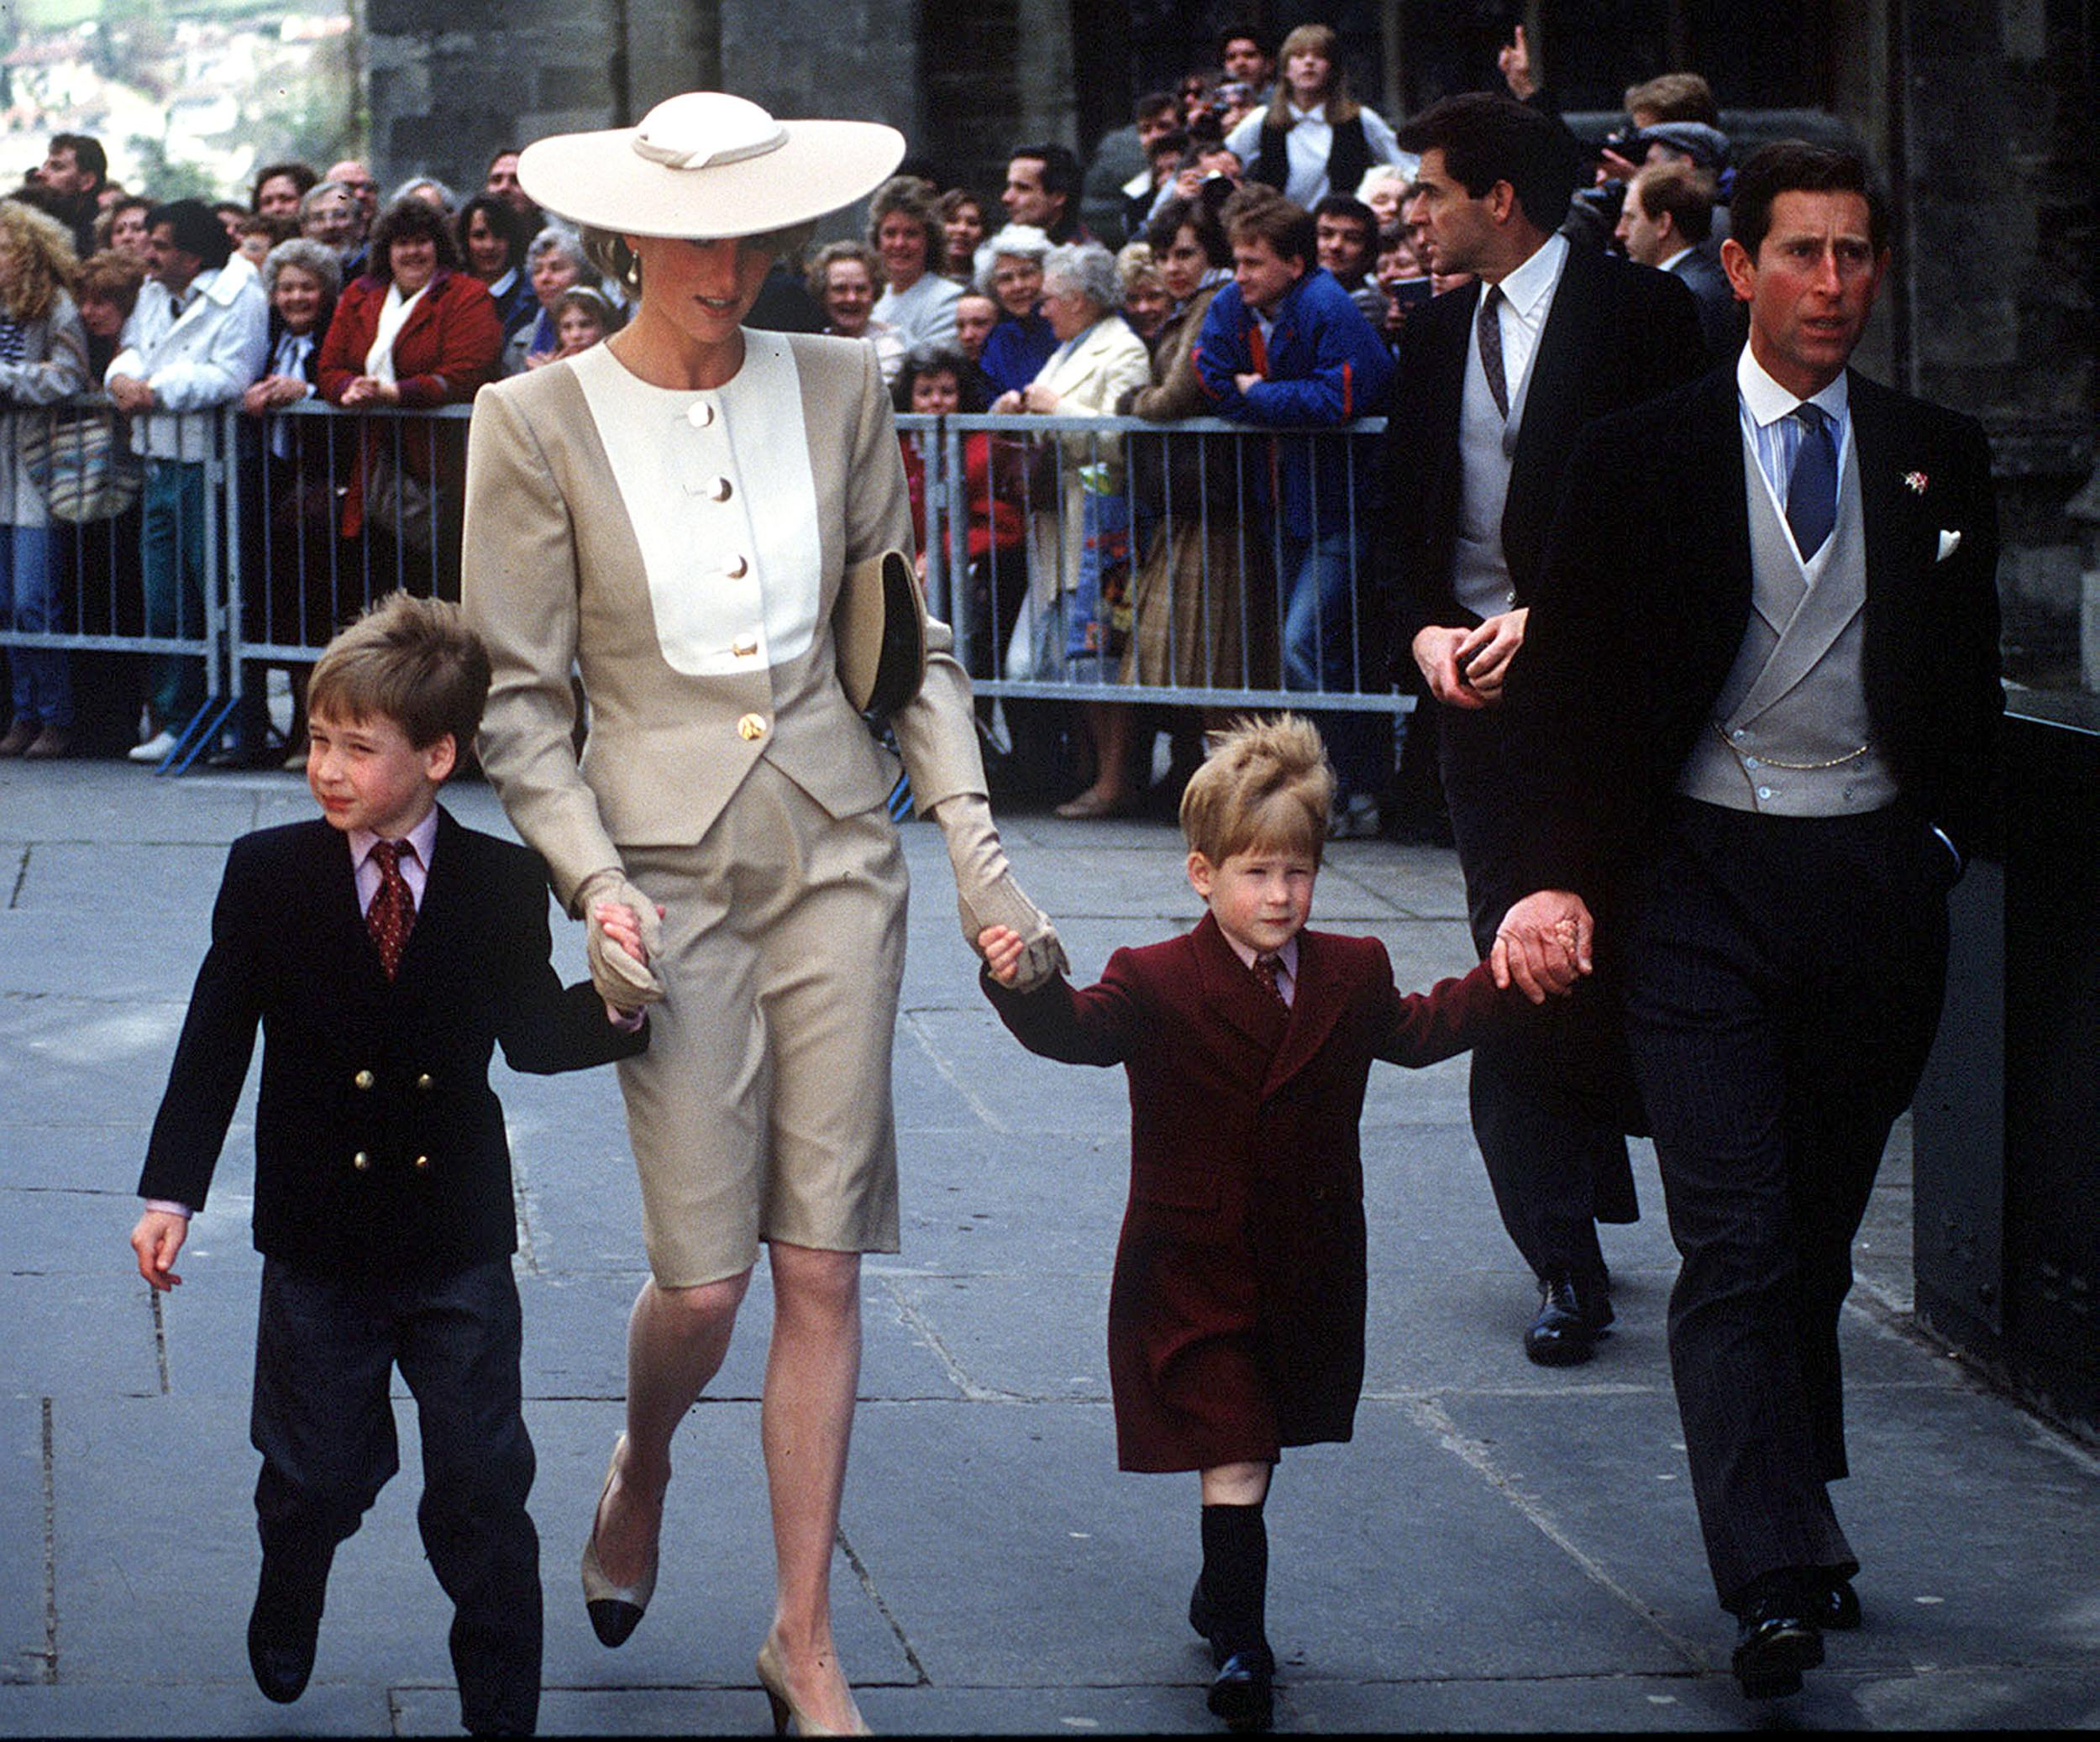 The Prince and Princess of Wales, with young Prince William and Harry at the wedding of Duke Hussey's daughter in Bath, May 1989. (Photo by Anwar Hussein/WireImage)